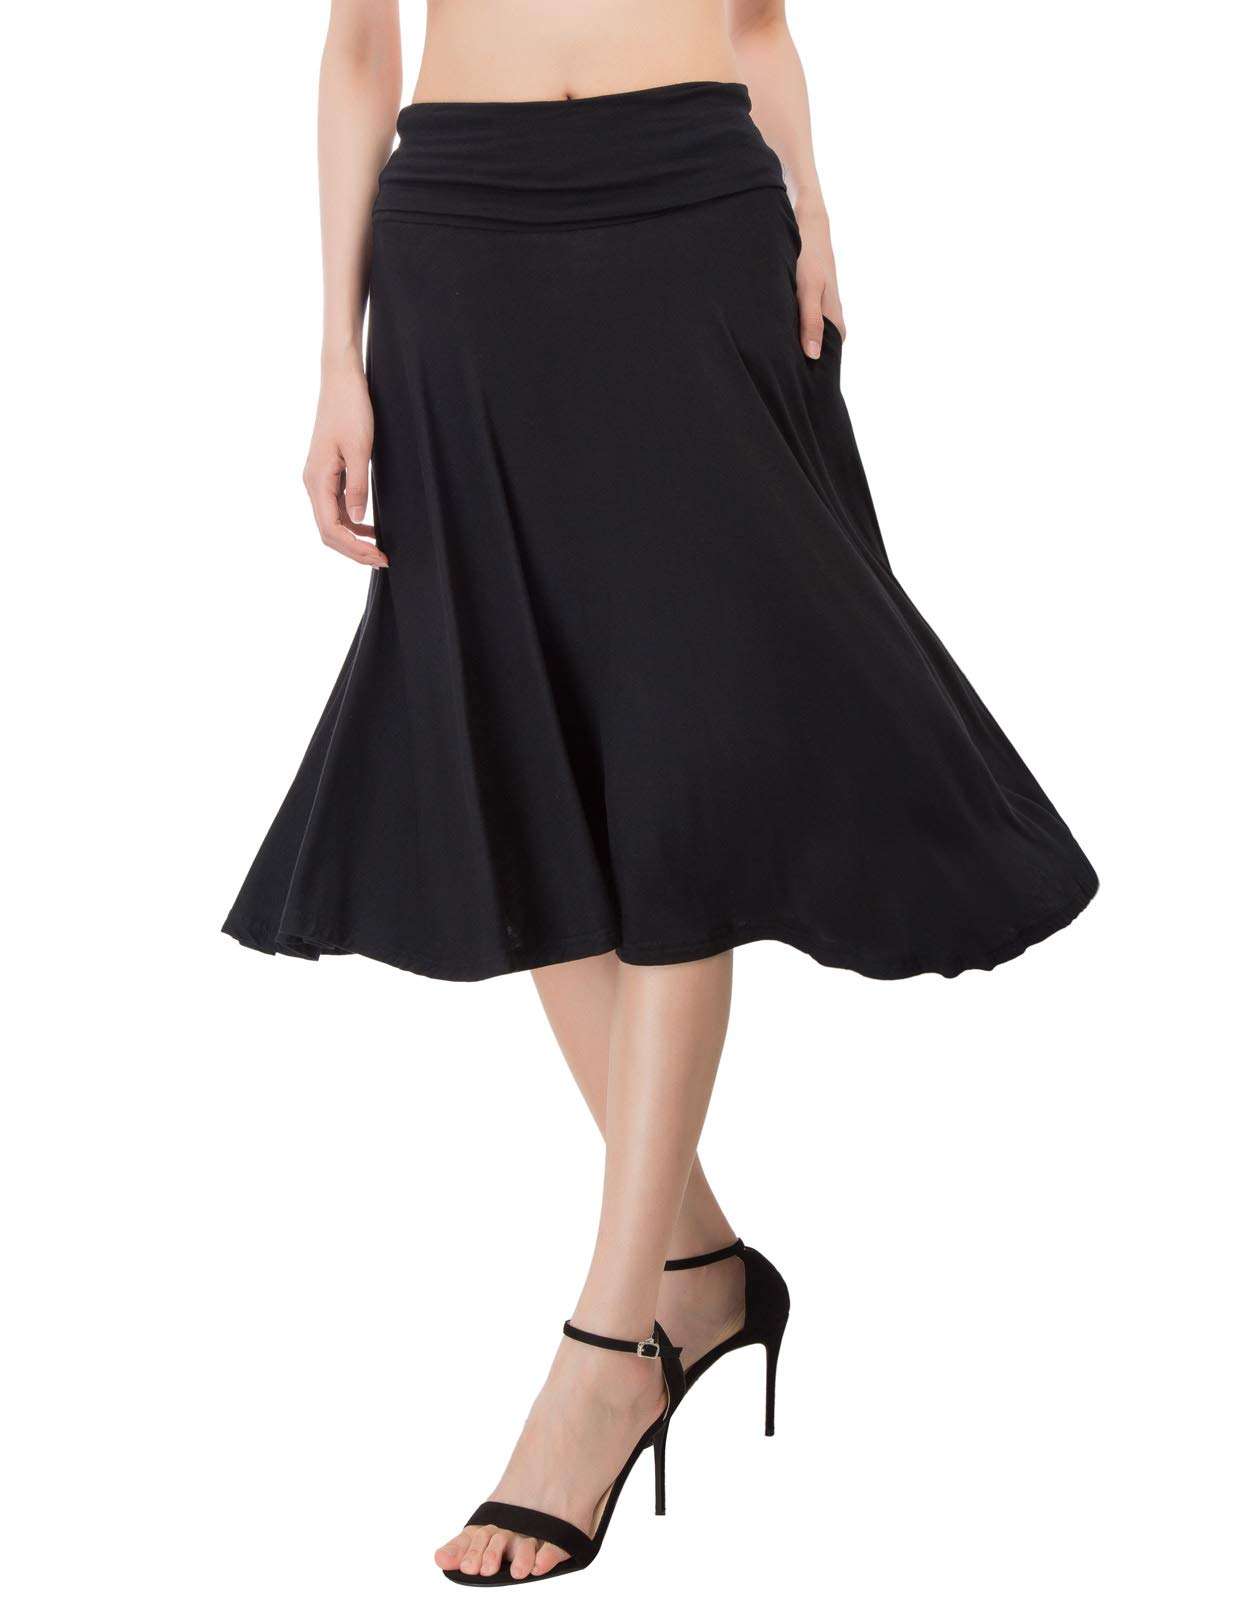 Kate Kasin Women's Comfy Fold Over Waist Cotton Flared Skirt with Side Pockets (S,Black)